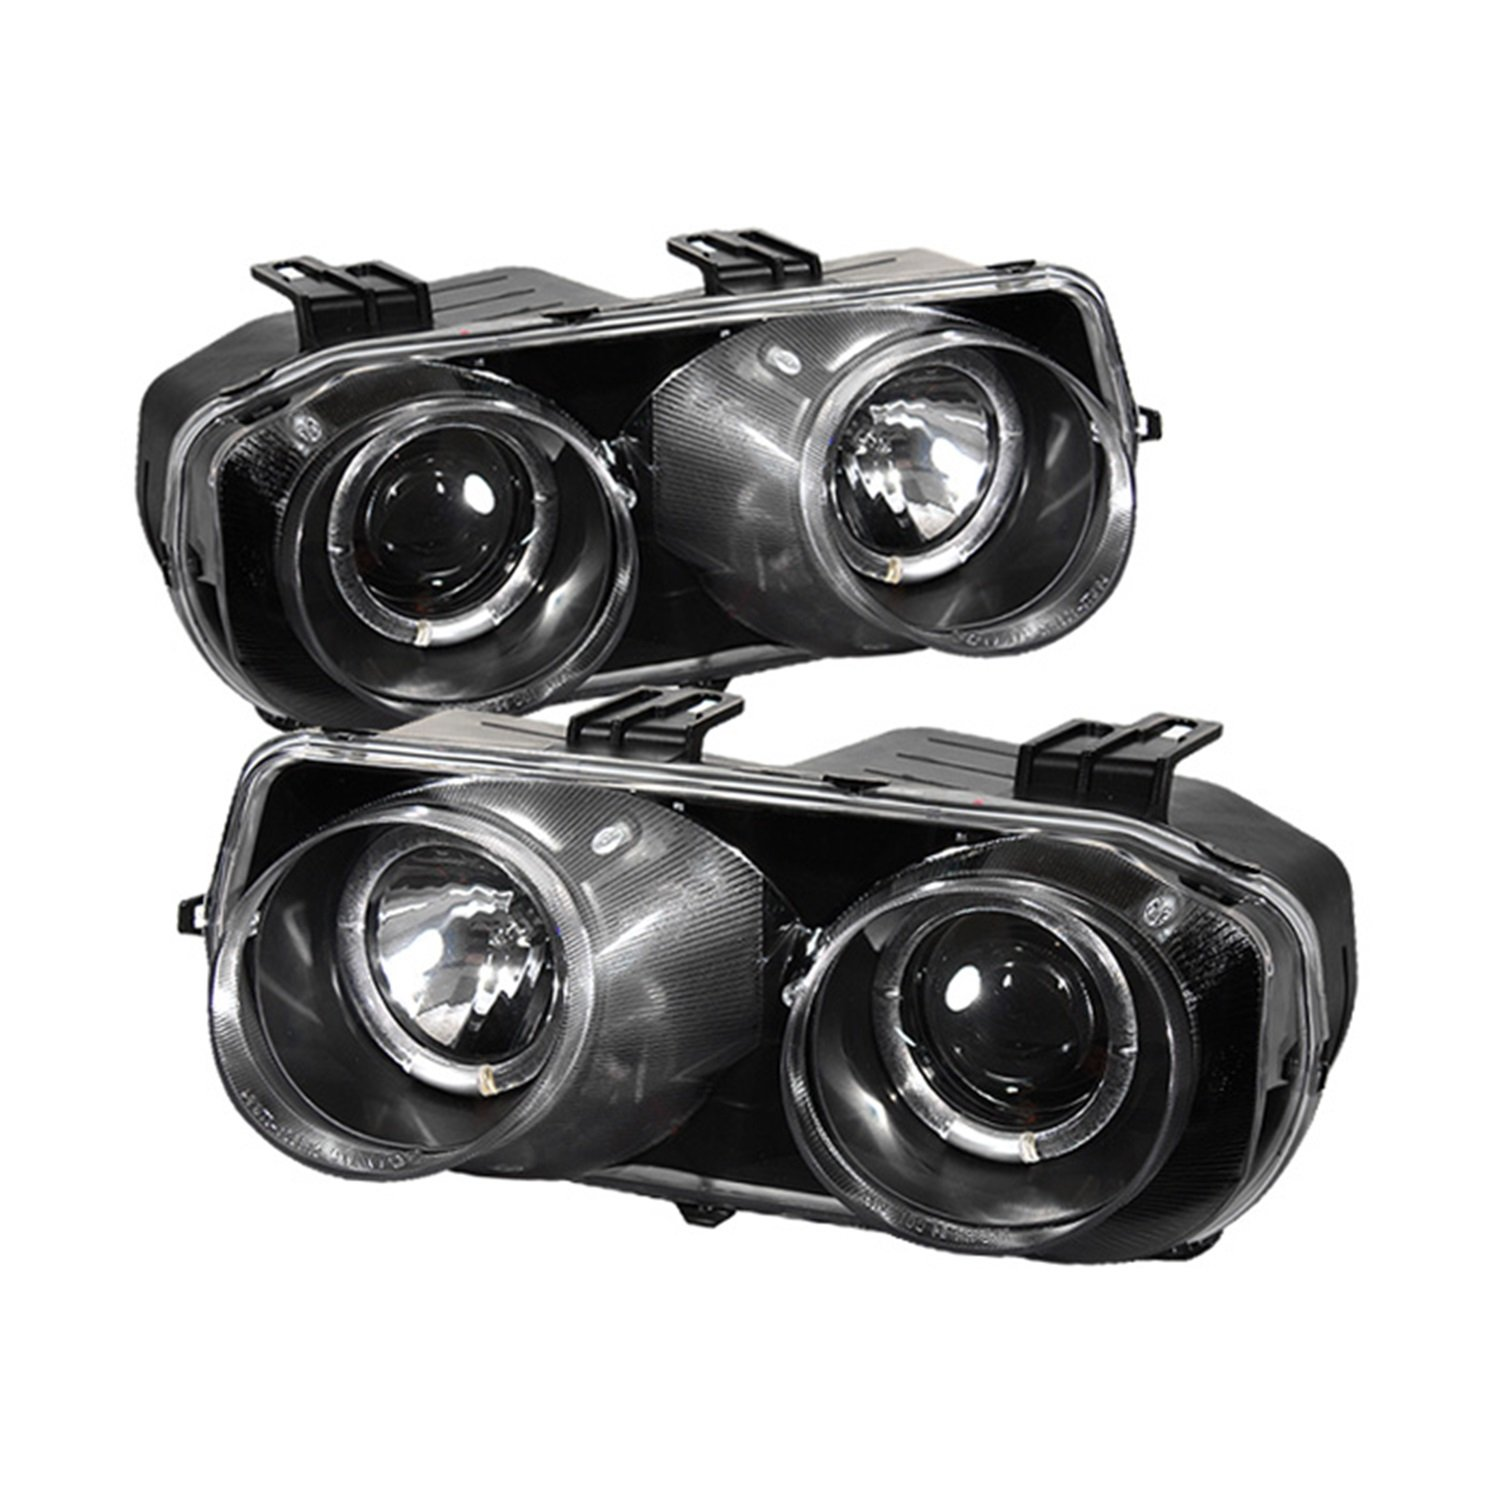 integrarsx black headlights tyc honda acura hondaacura jdm product bmm integra rsx